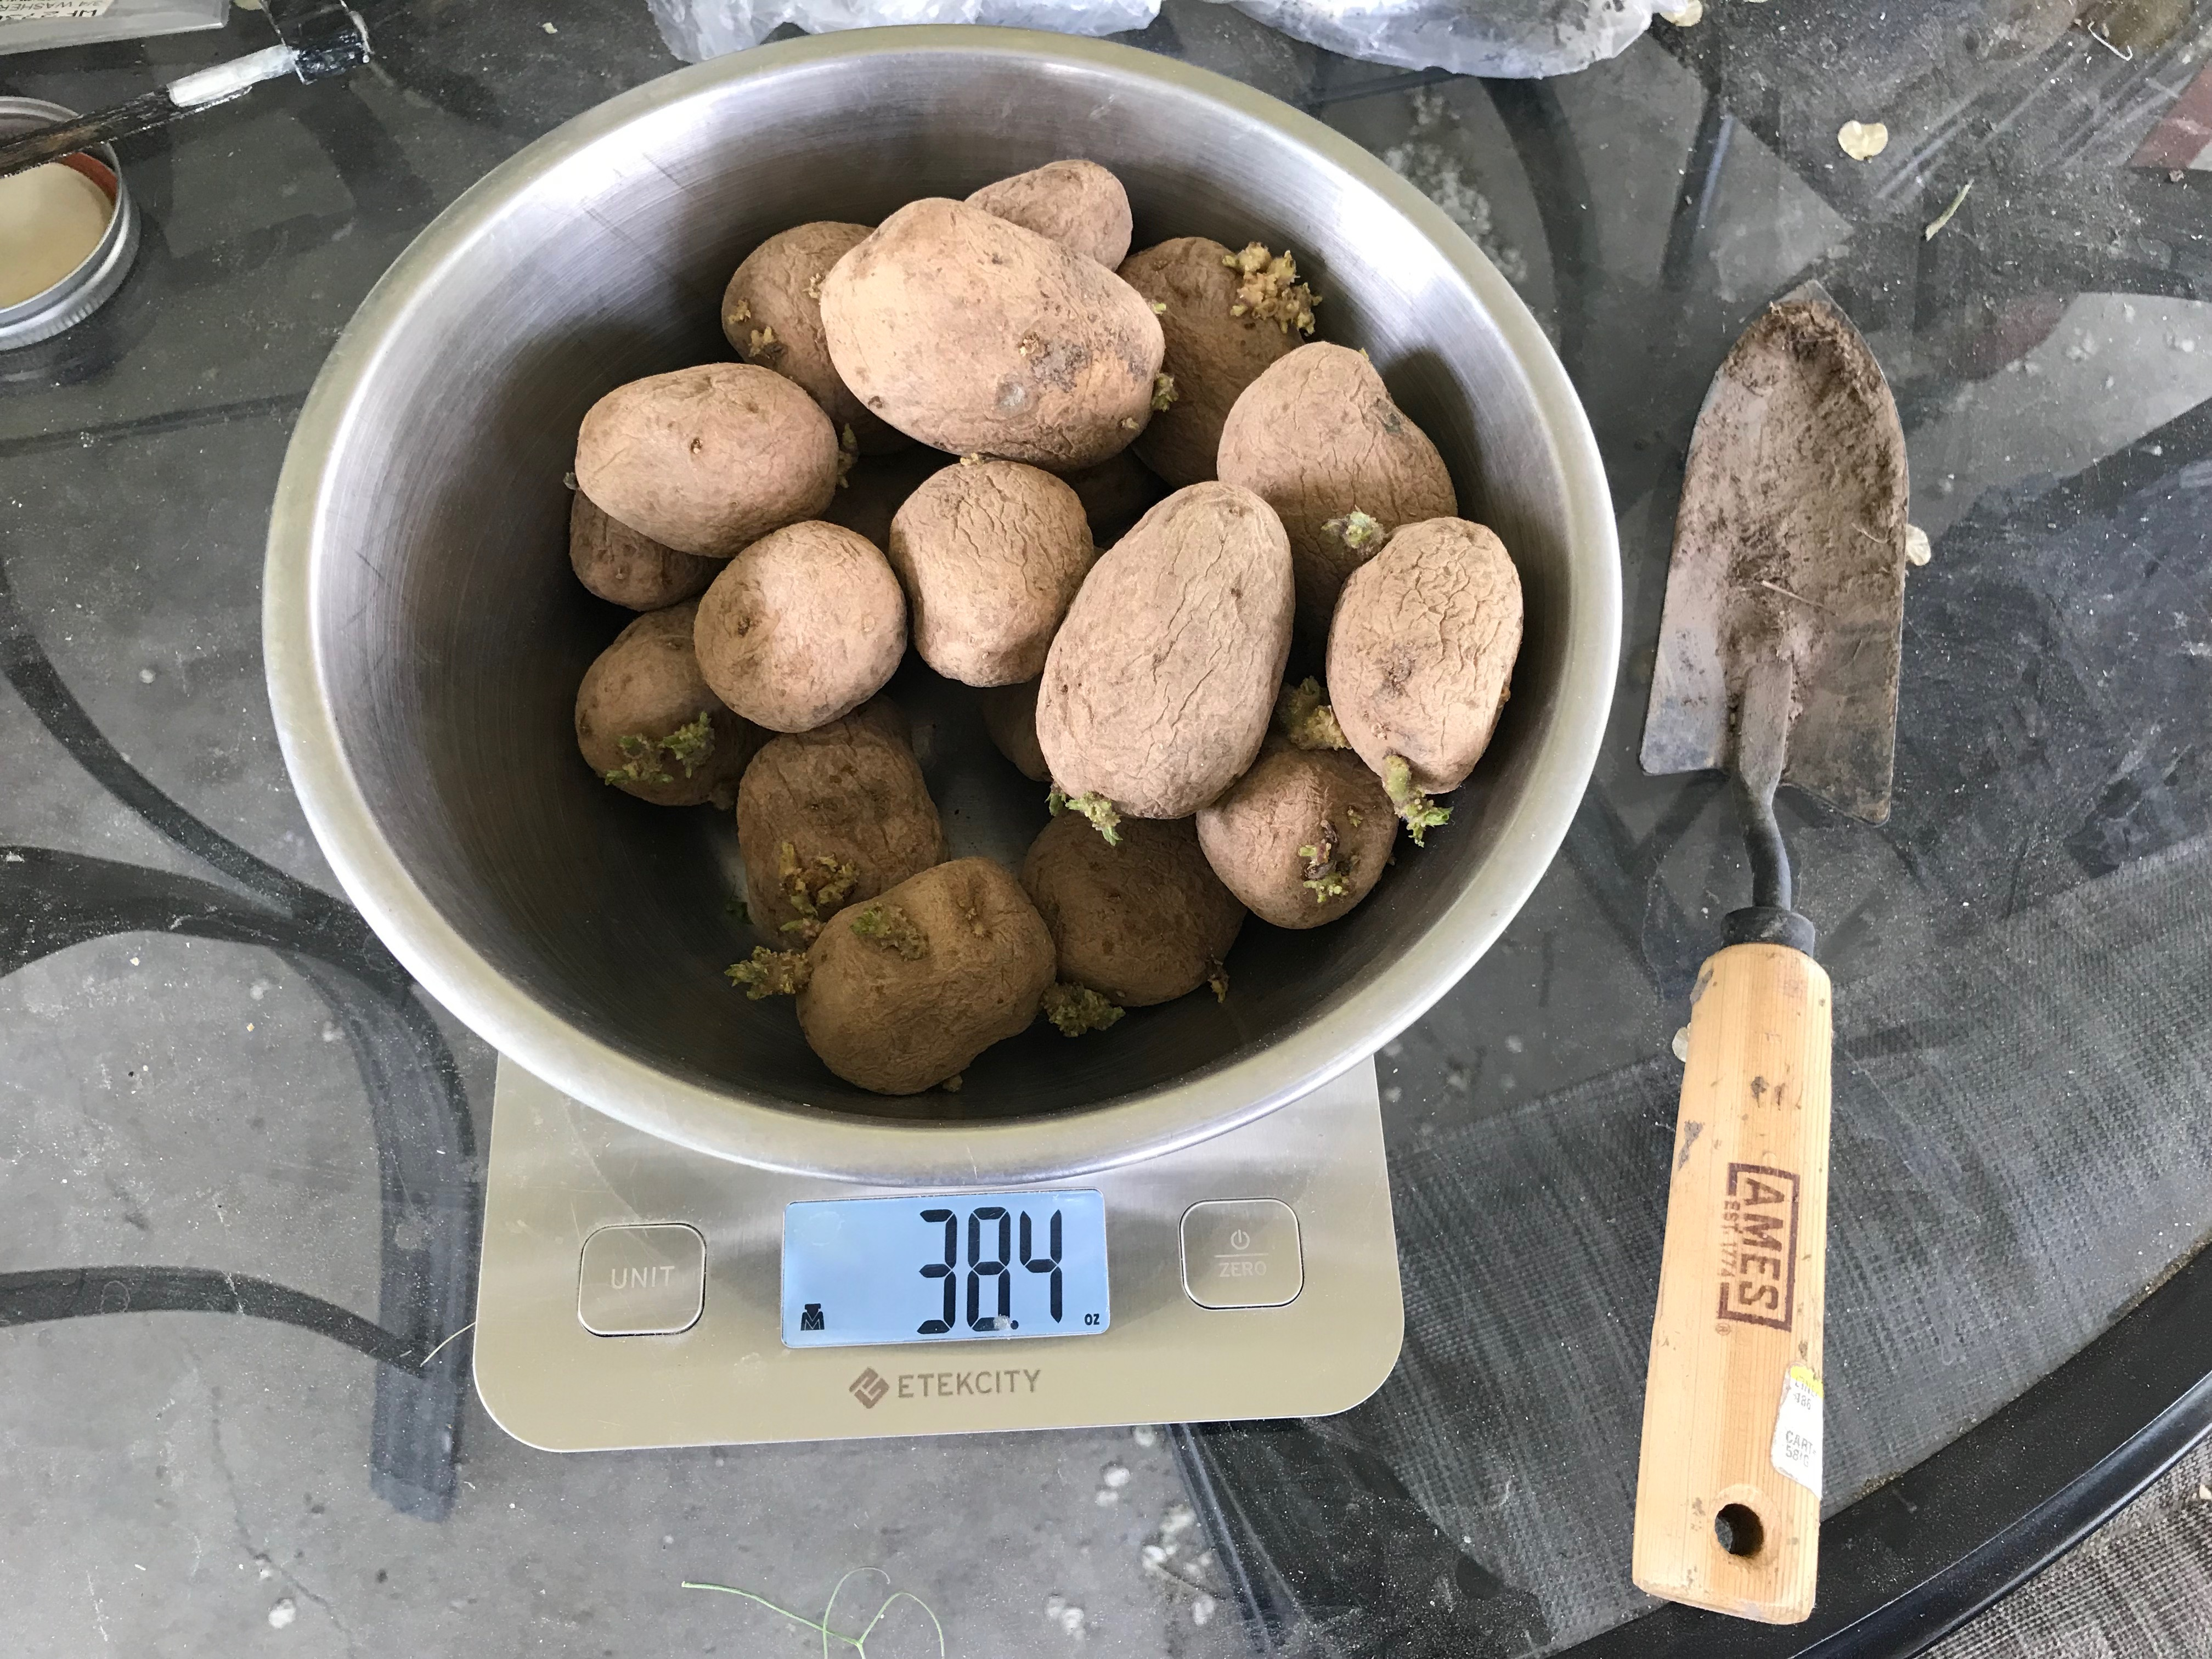 2019 05 18 potatoes to be planted.jpeg